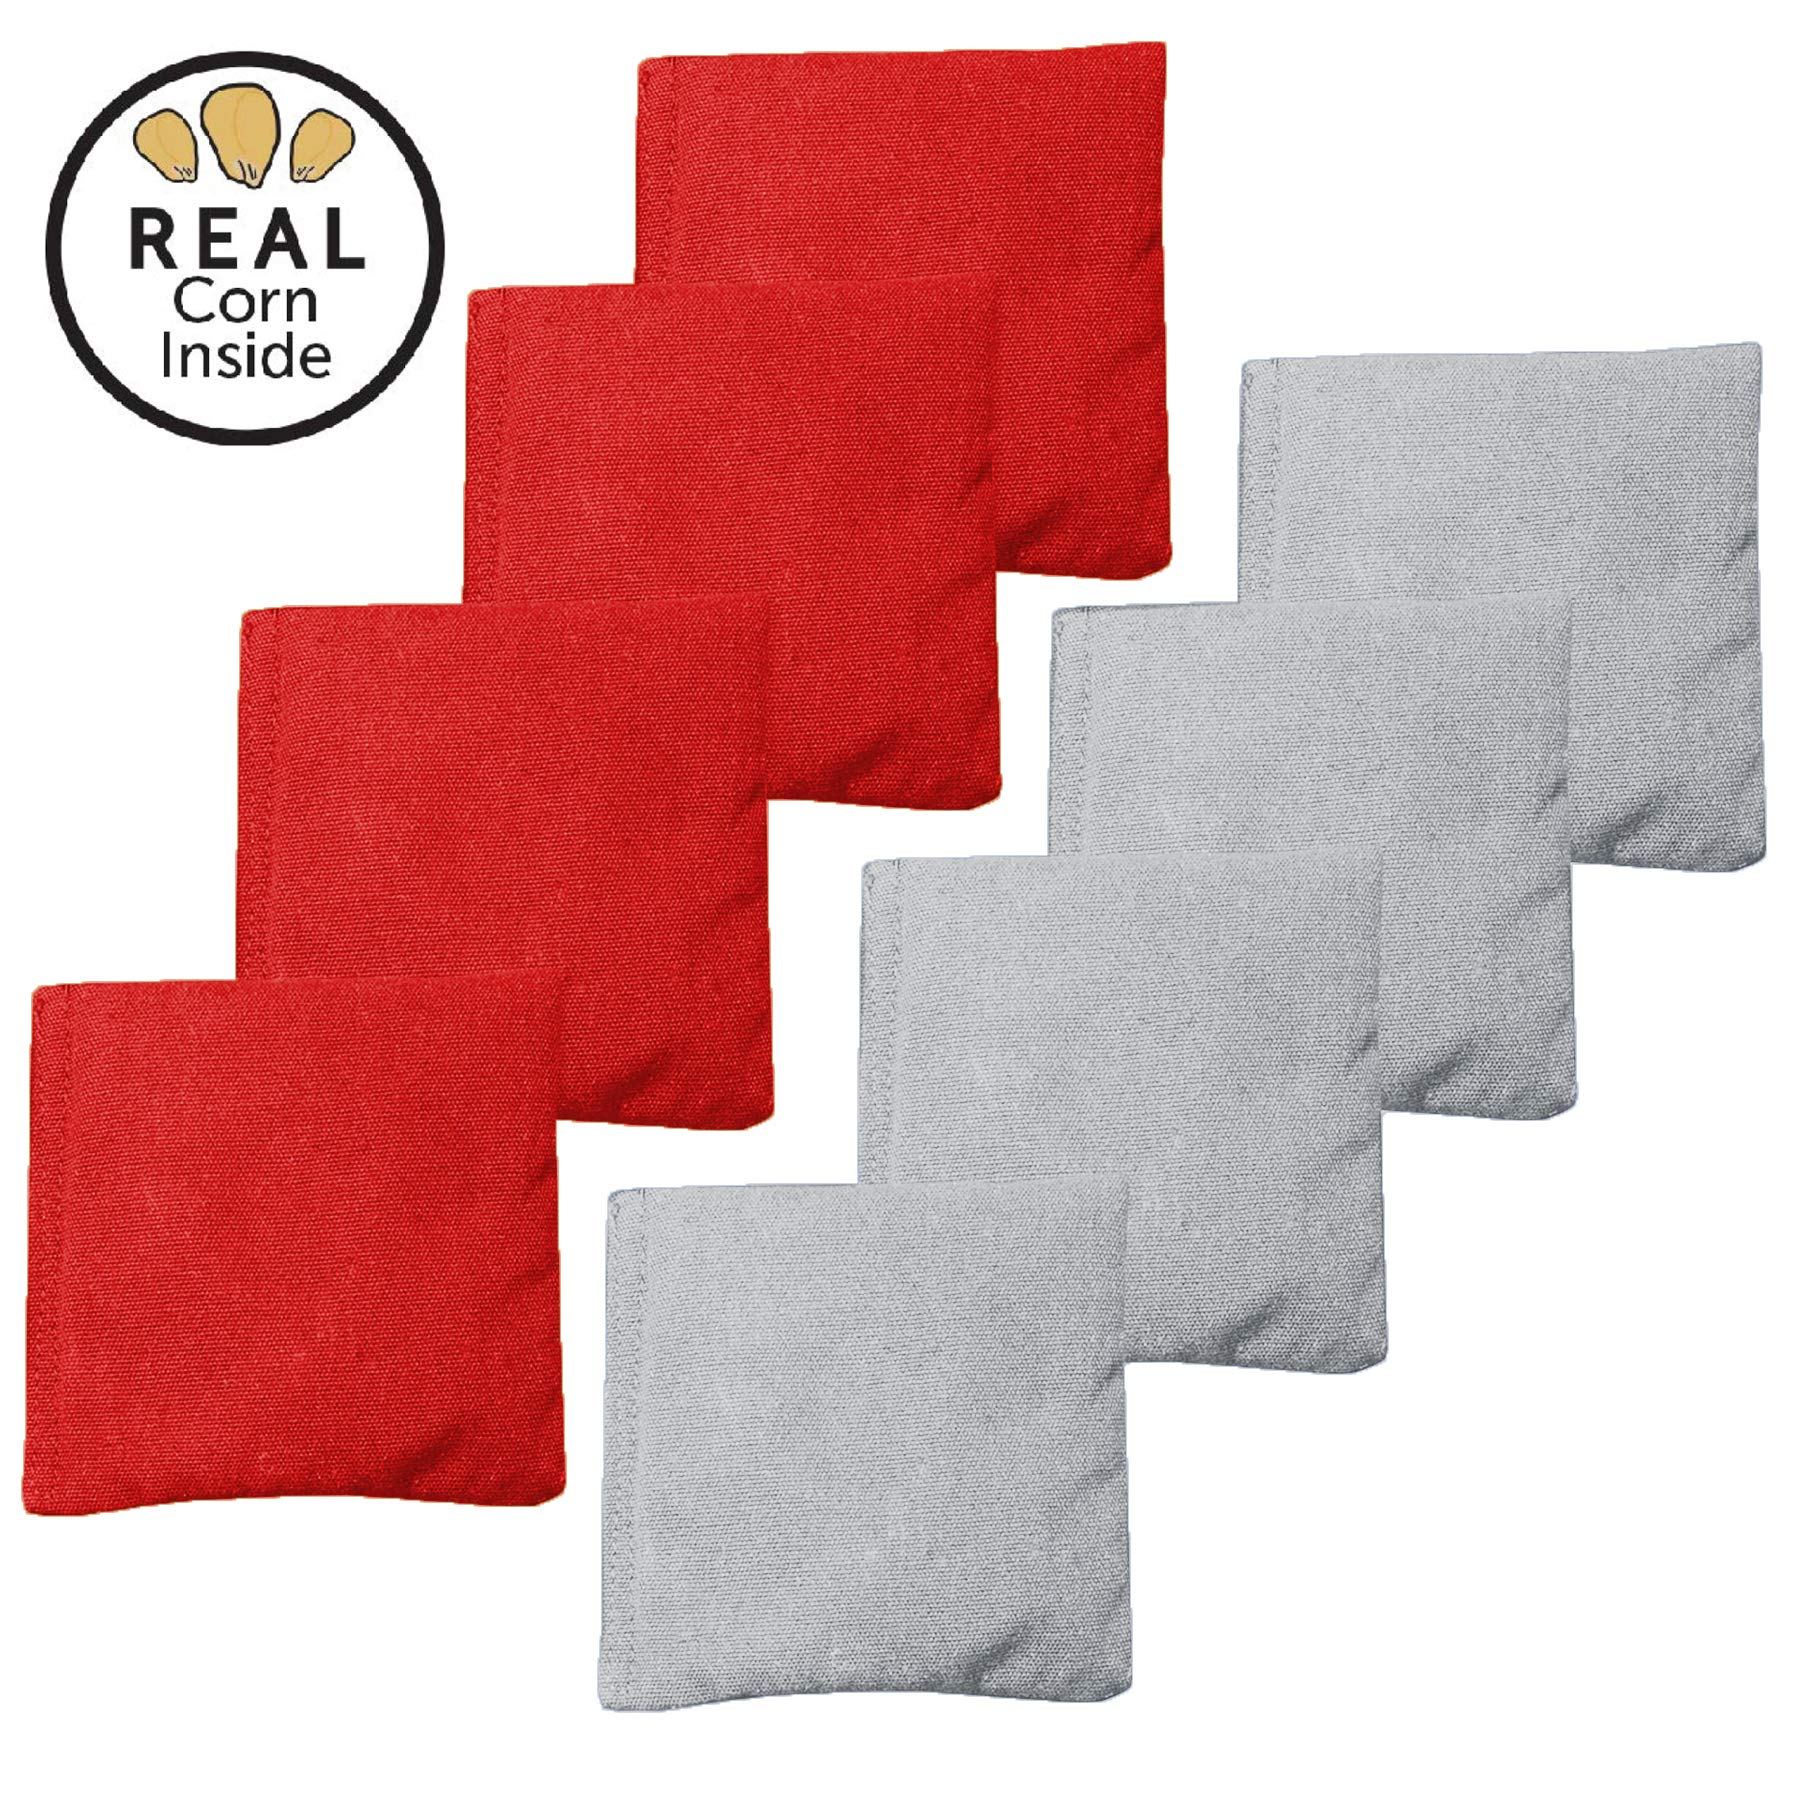 Real Corn Filled Cornhole Bags - Set of 8 Bean Bags for Corn Hole Game - Regulation Size & Weight - Red and Gray